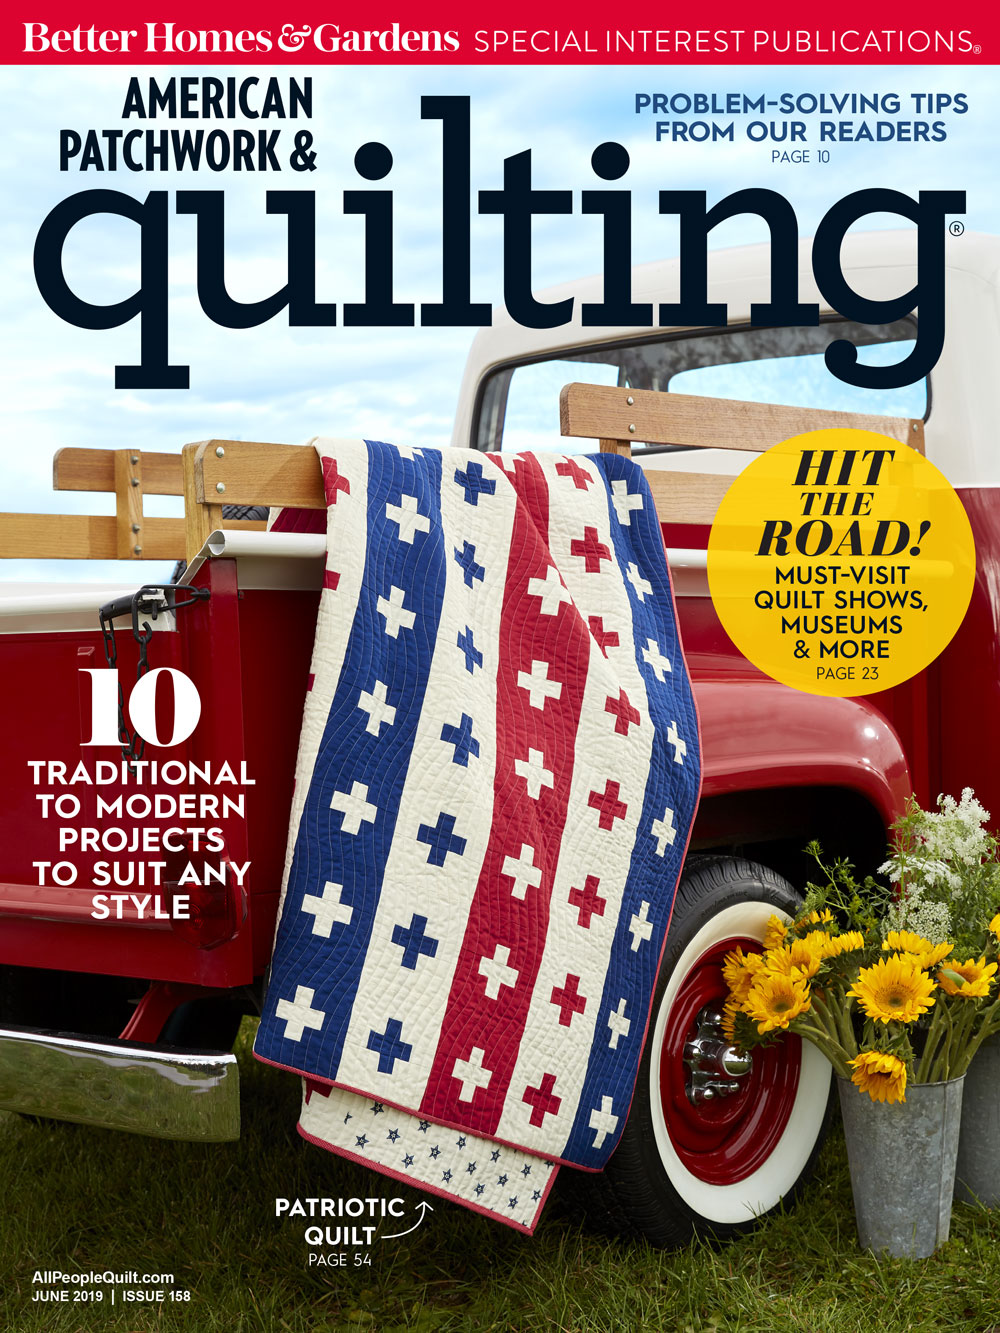 American Patchwork & Quilting June 2019